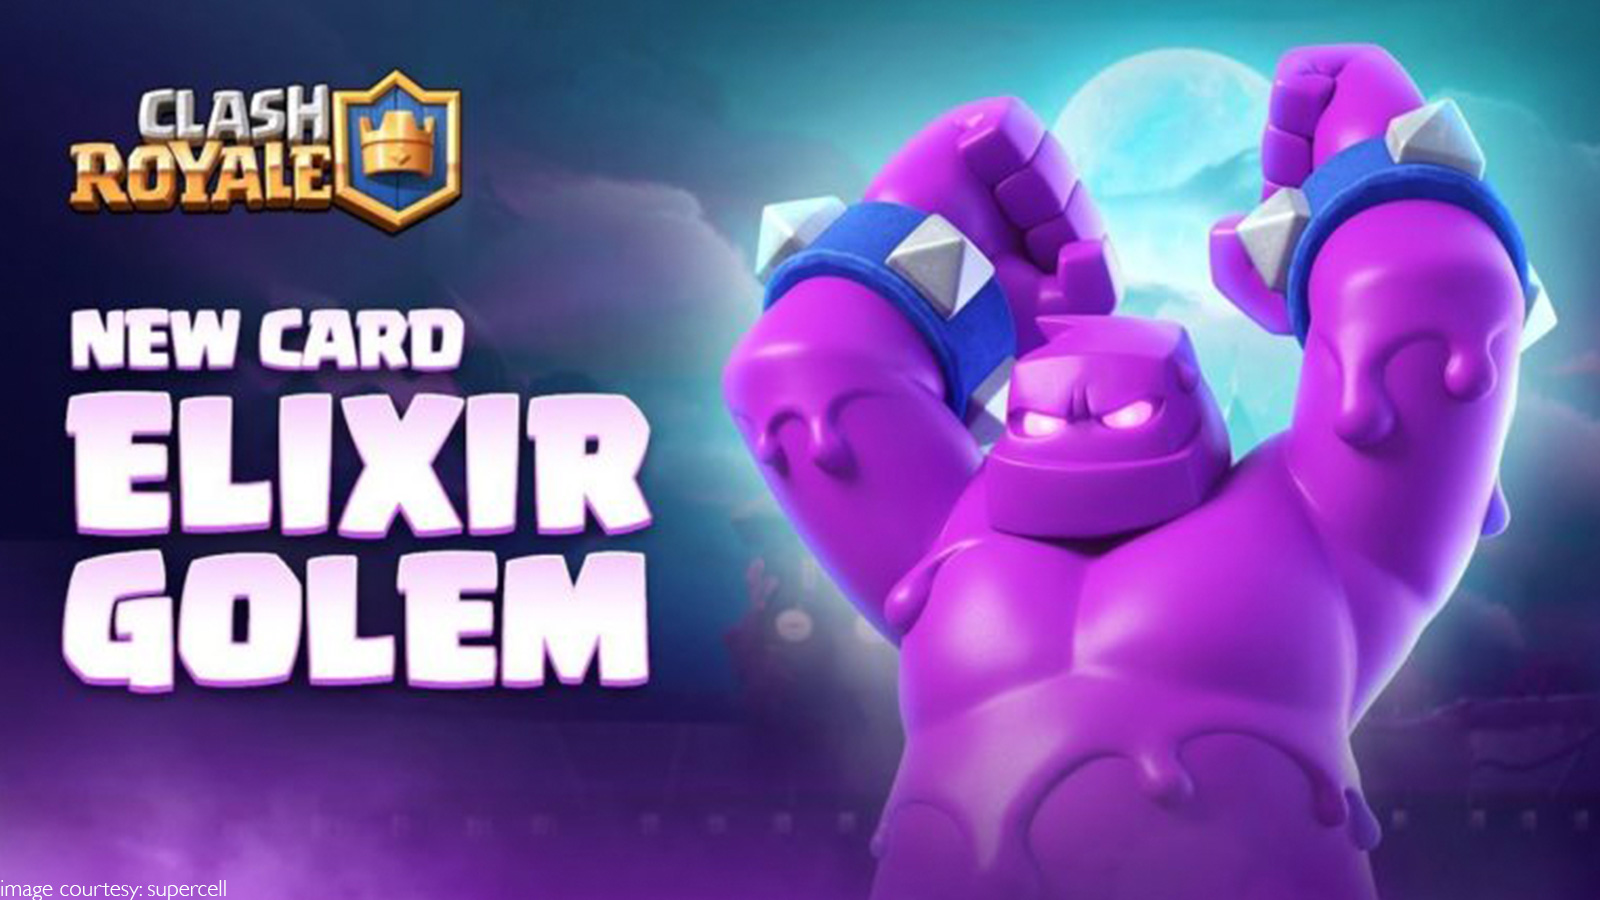 Shocktober Update to Introduce New Arena, Cards, and Modes to Clash Royale